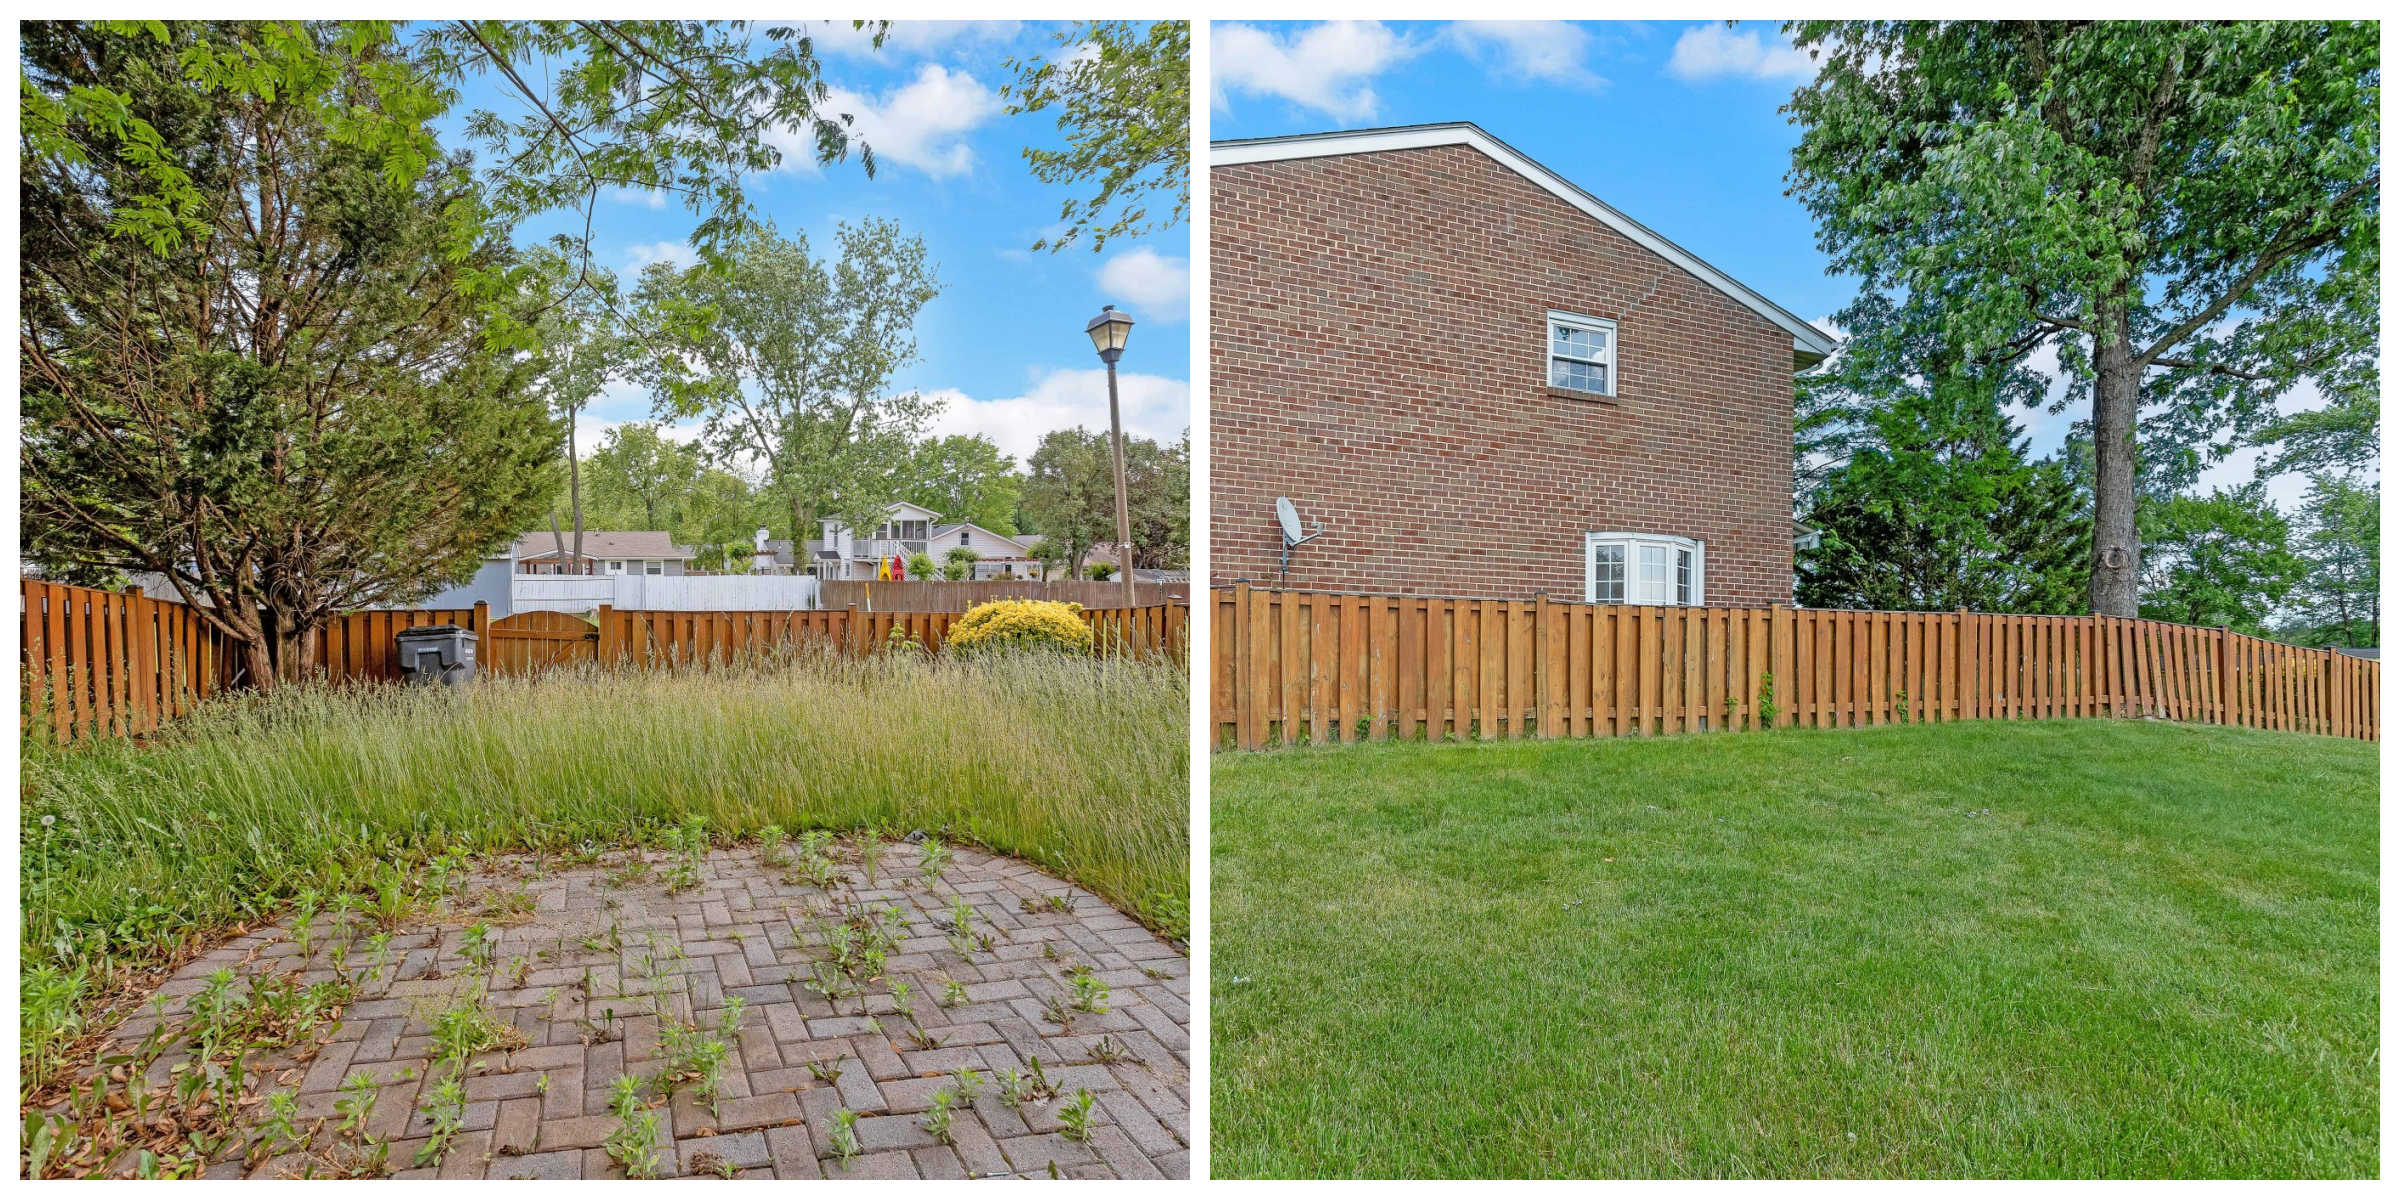 736 Colonial Ave, Sterling- Yard